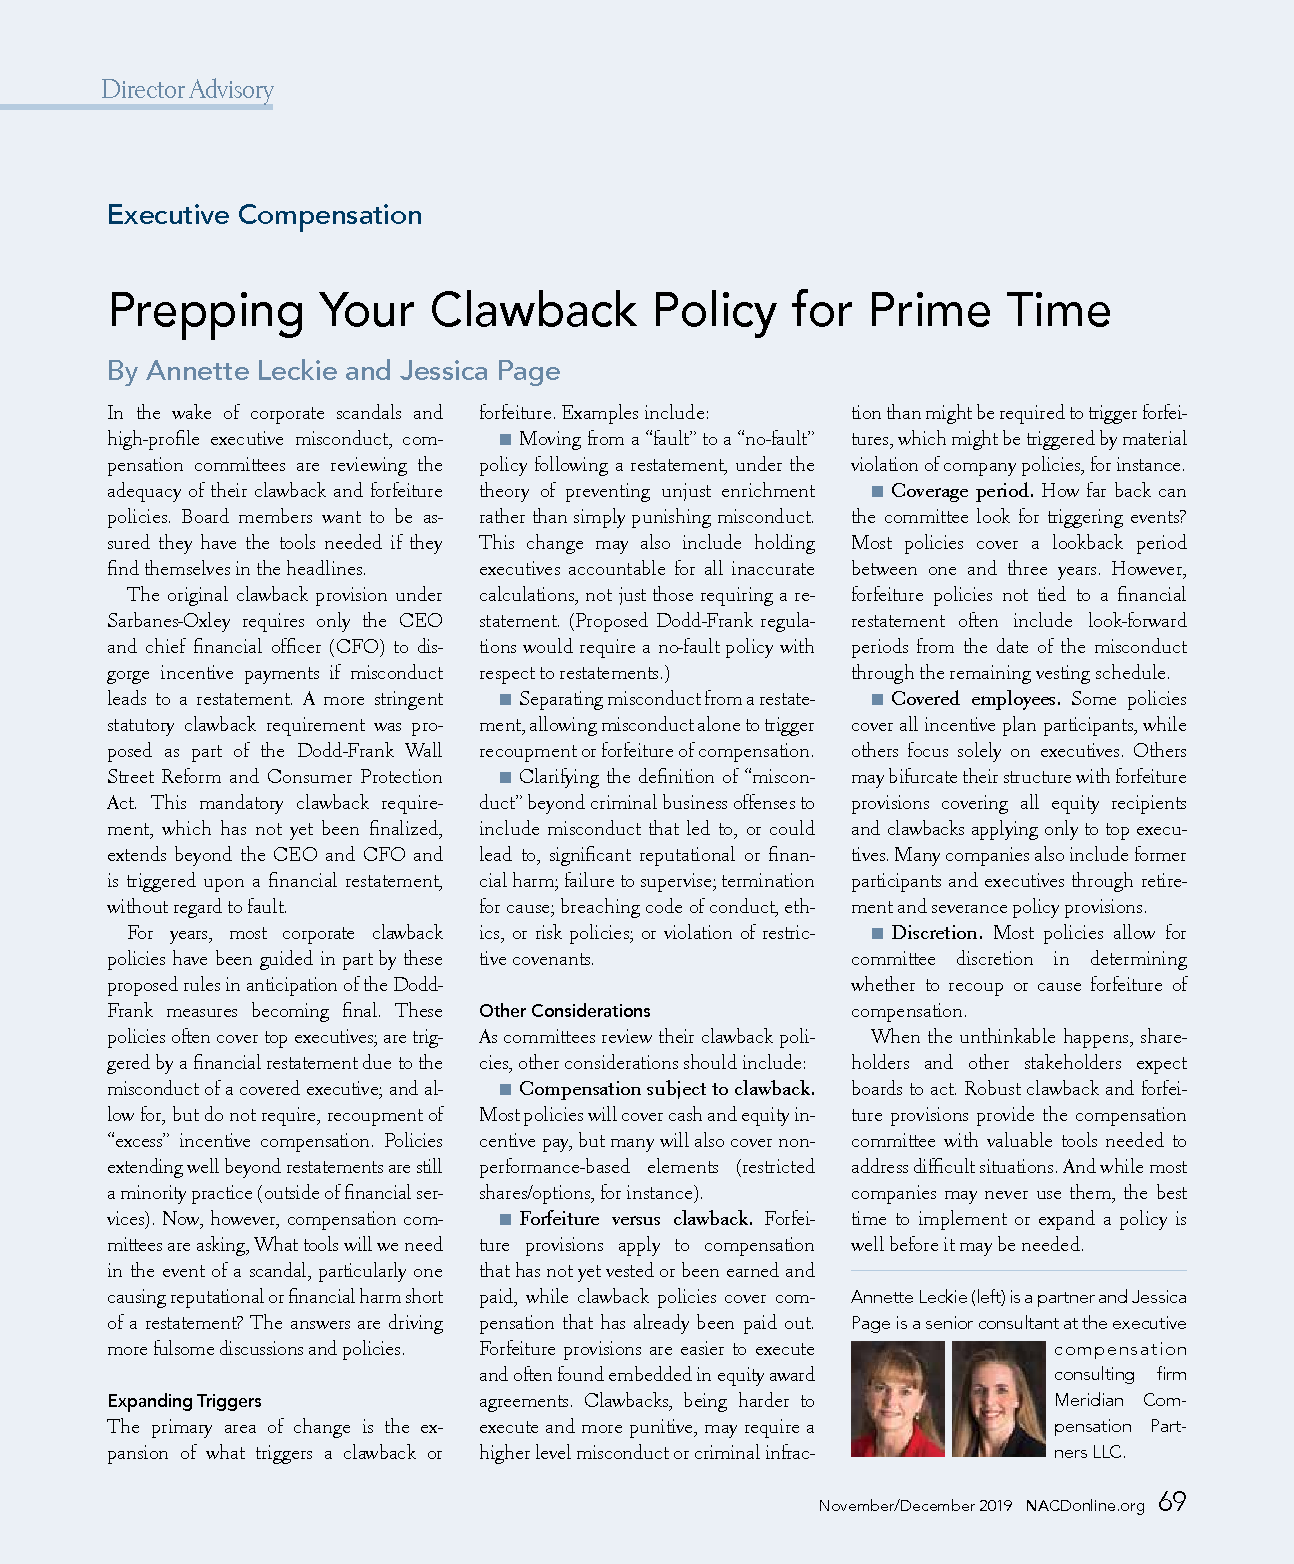 Prepping Your Clawback Policy for Prime Time (PDF)